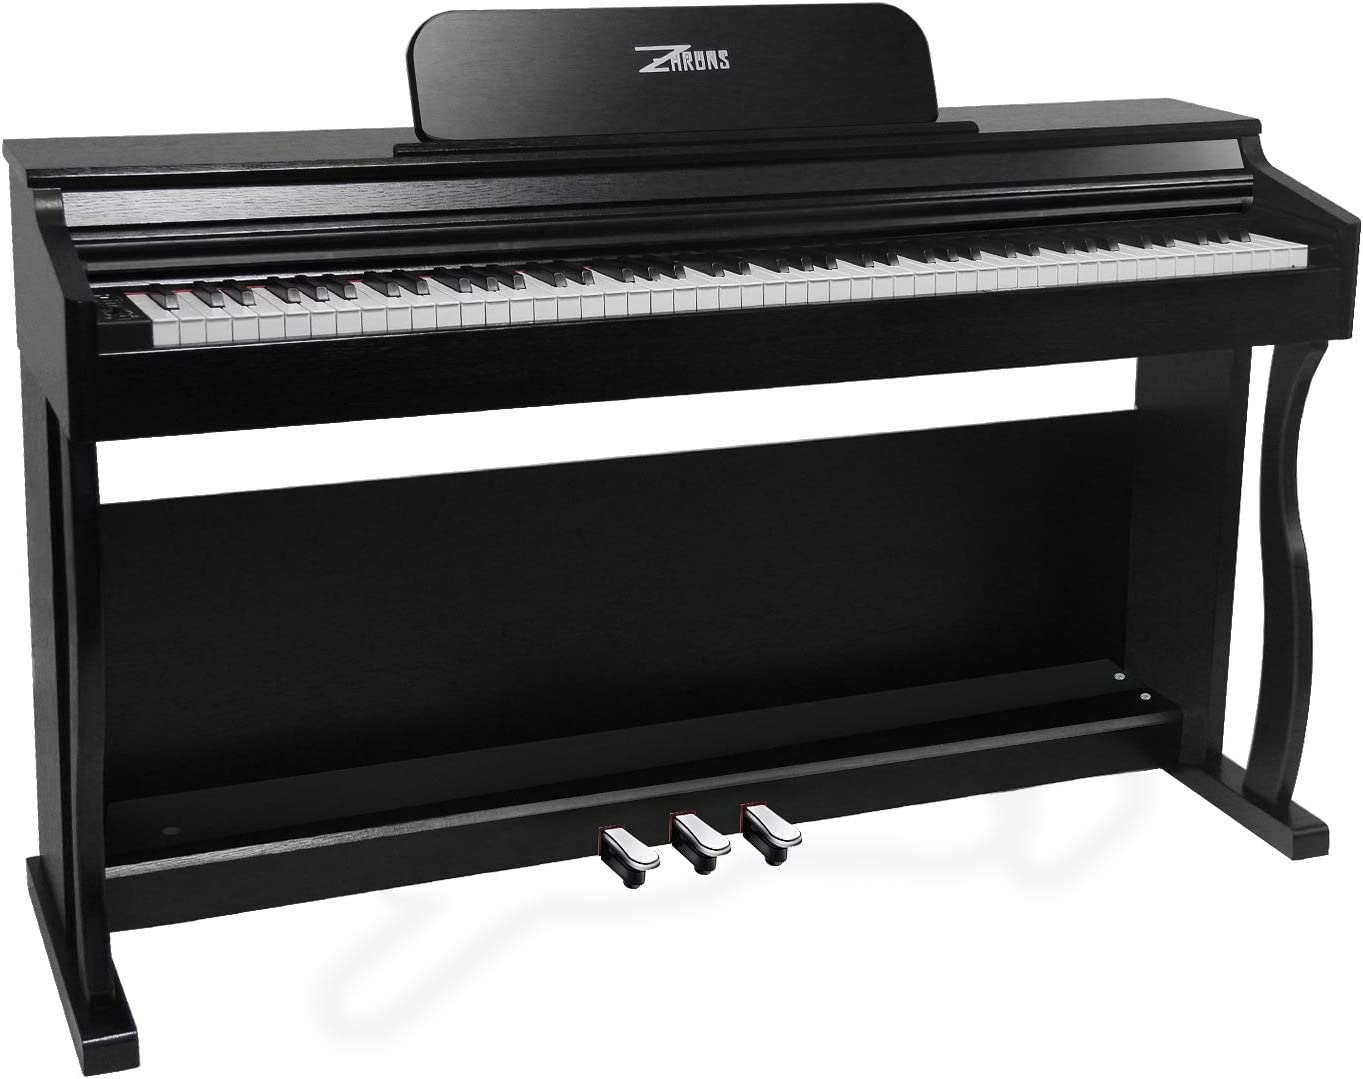 ZHRUNS Digital Piano,88 Heavy Hammer Piano Keys with Touch Response Electric Keyboard Piano/Music Stand+Power Adapter+3 Metal Pedals+Instruction Book,Headphone Jack/MIDI Input/Outputp (Black)